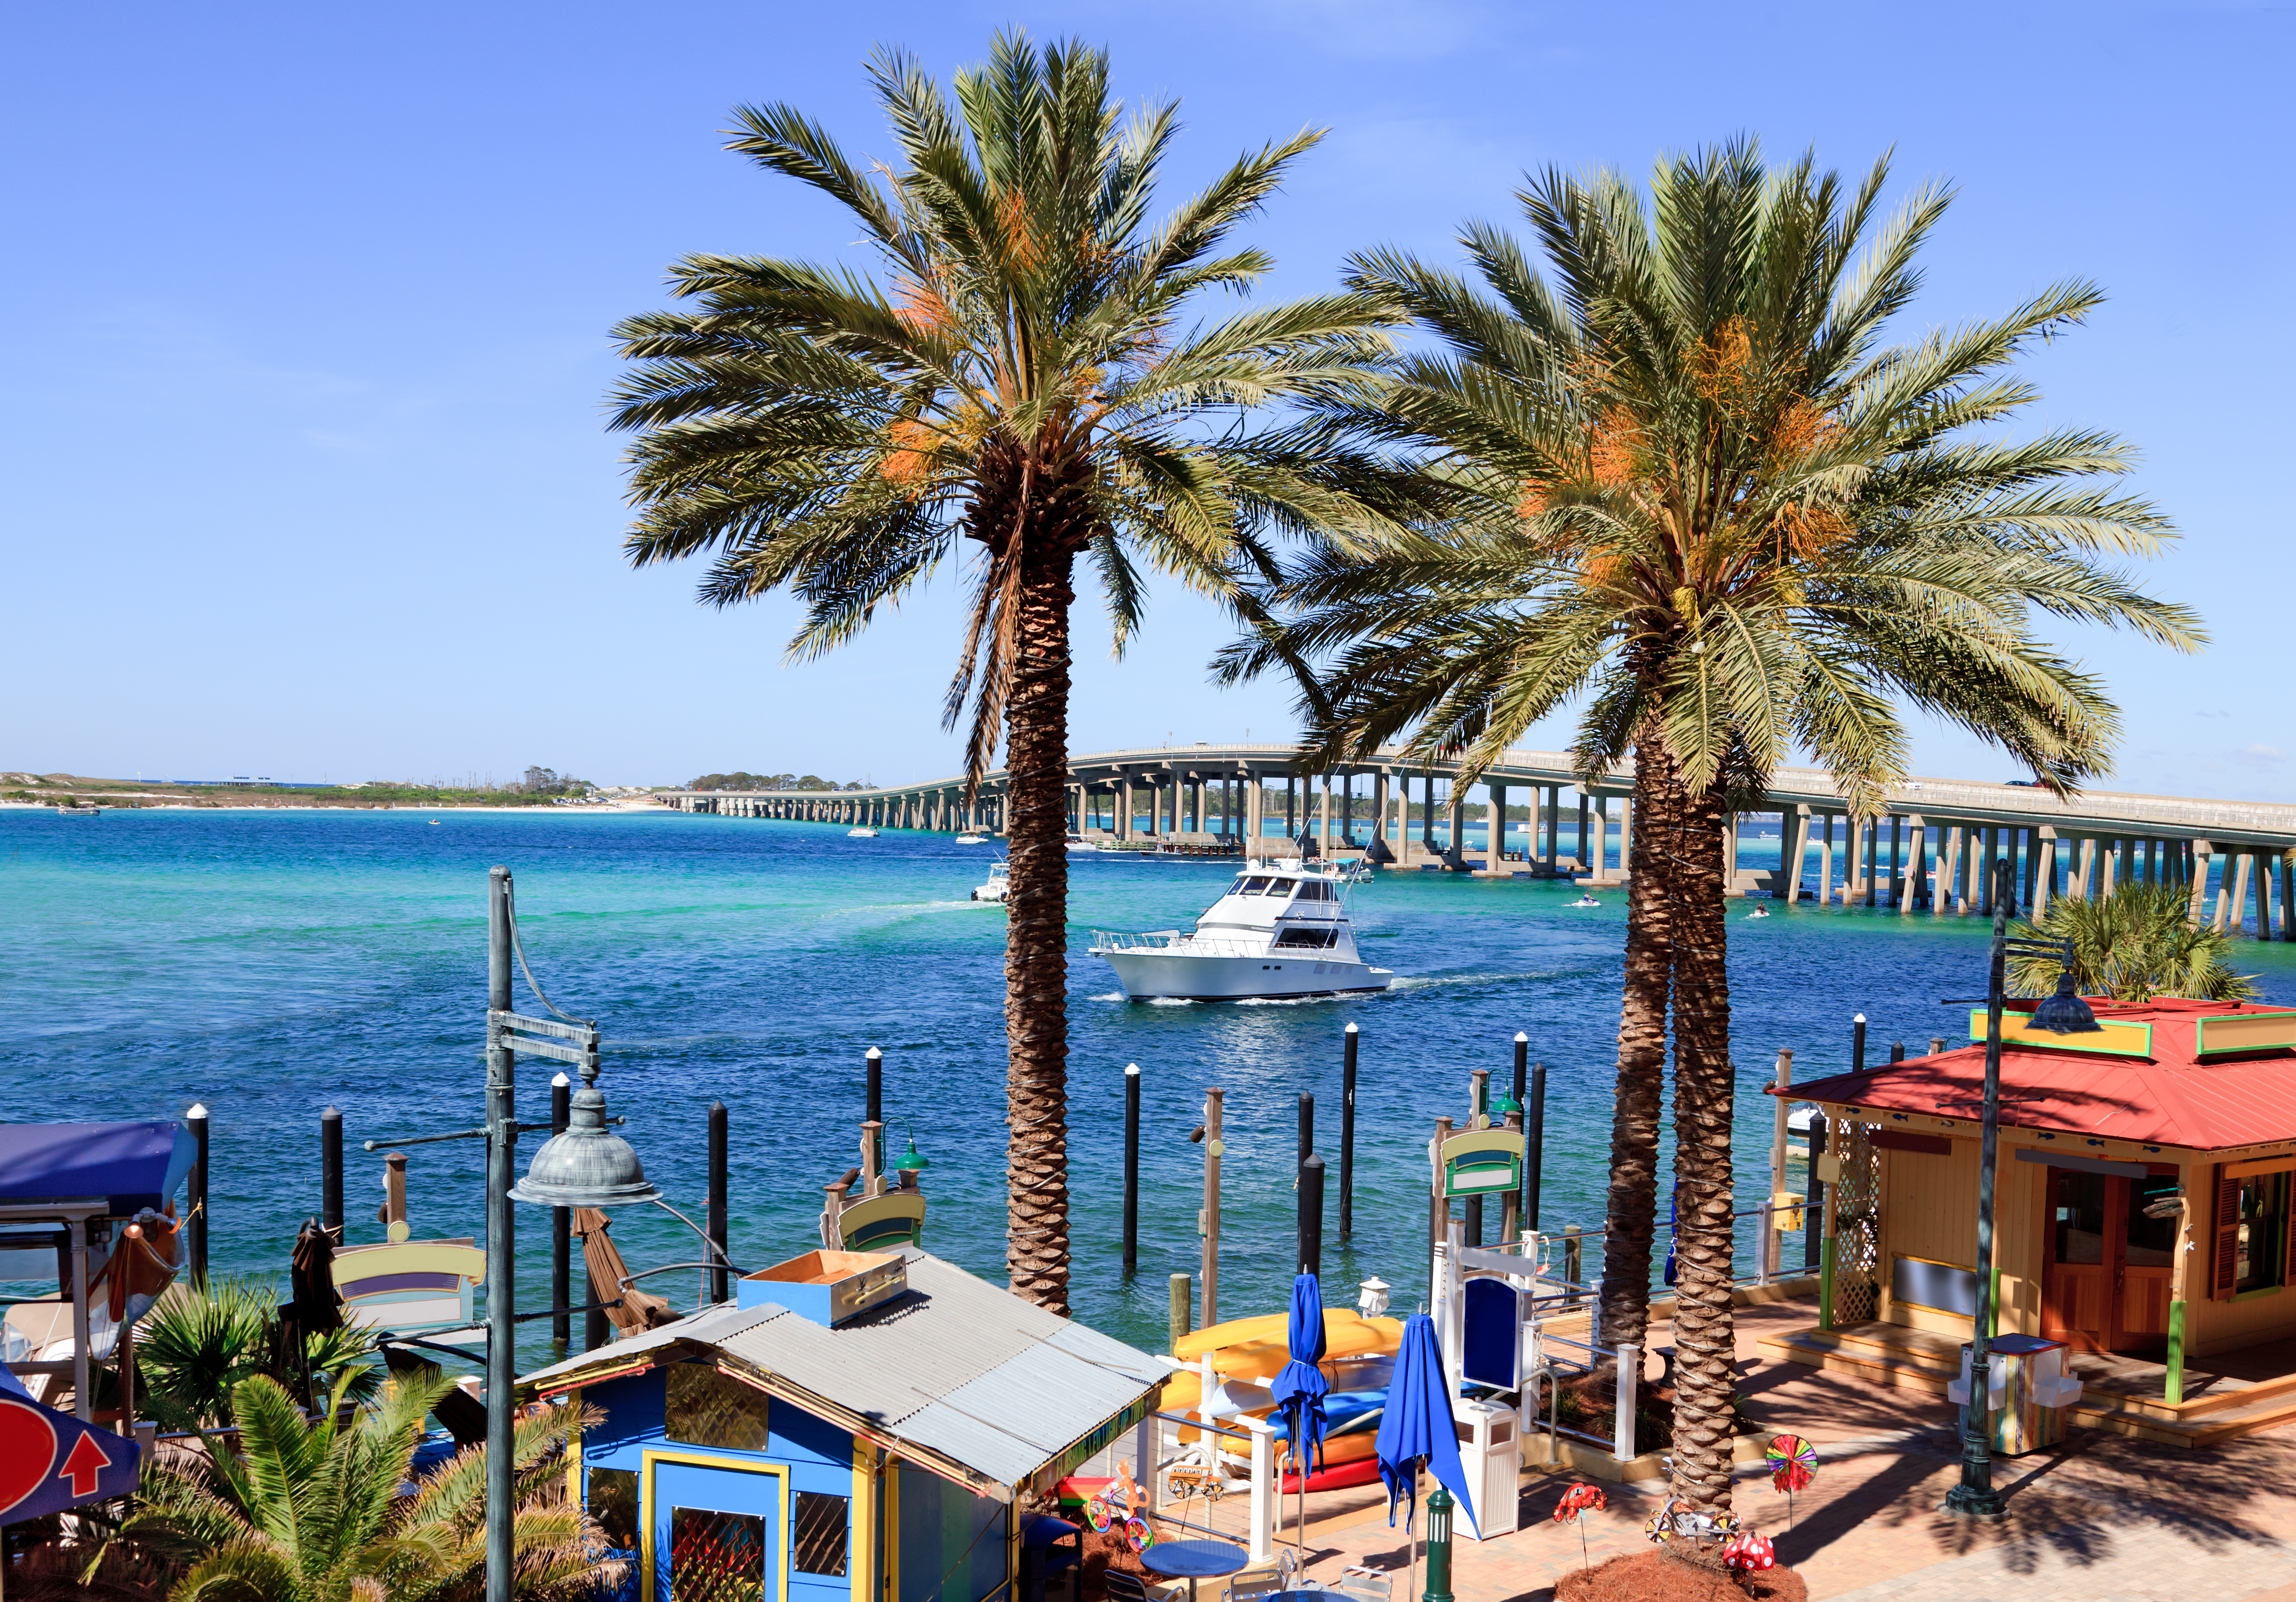 Coastal waters around Destin Florida